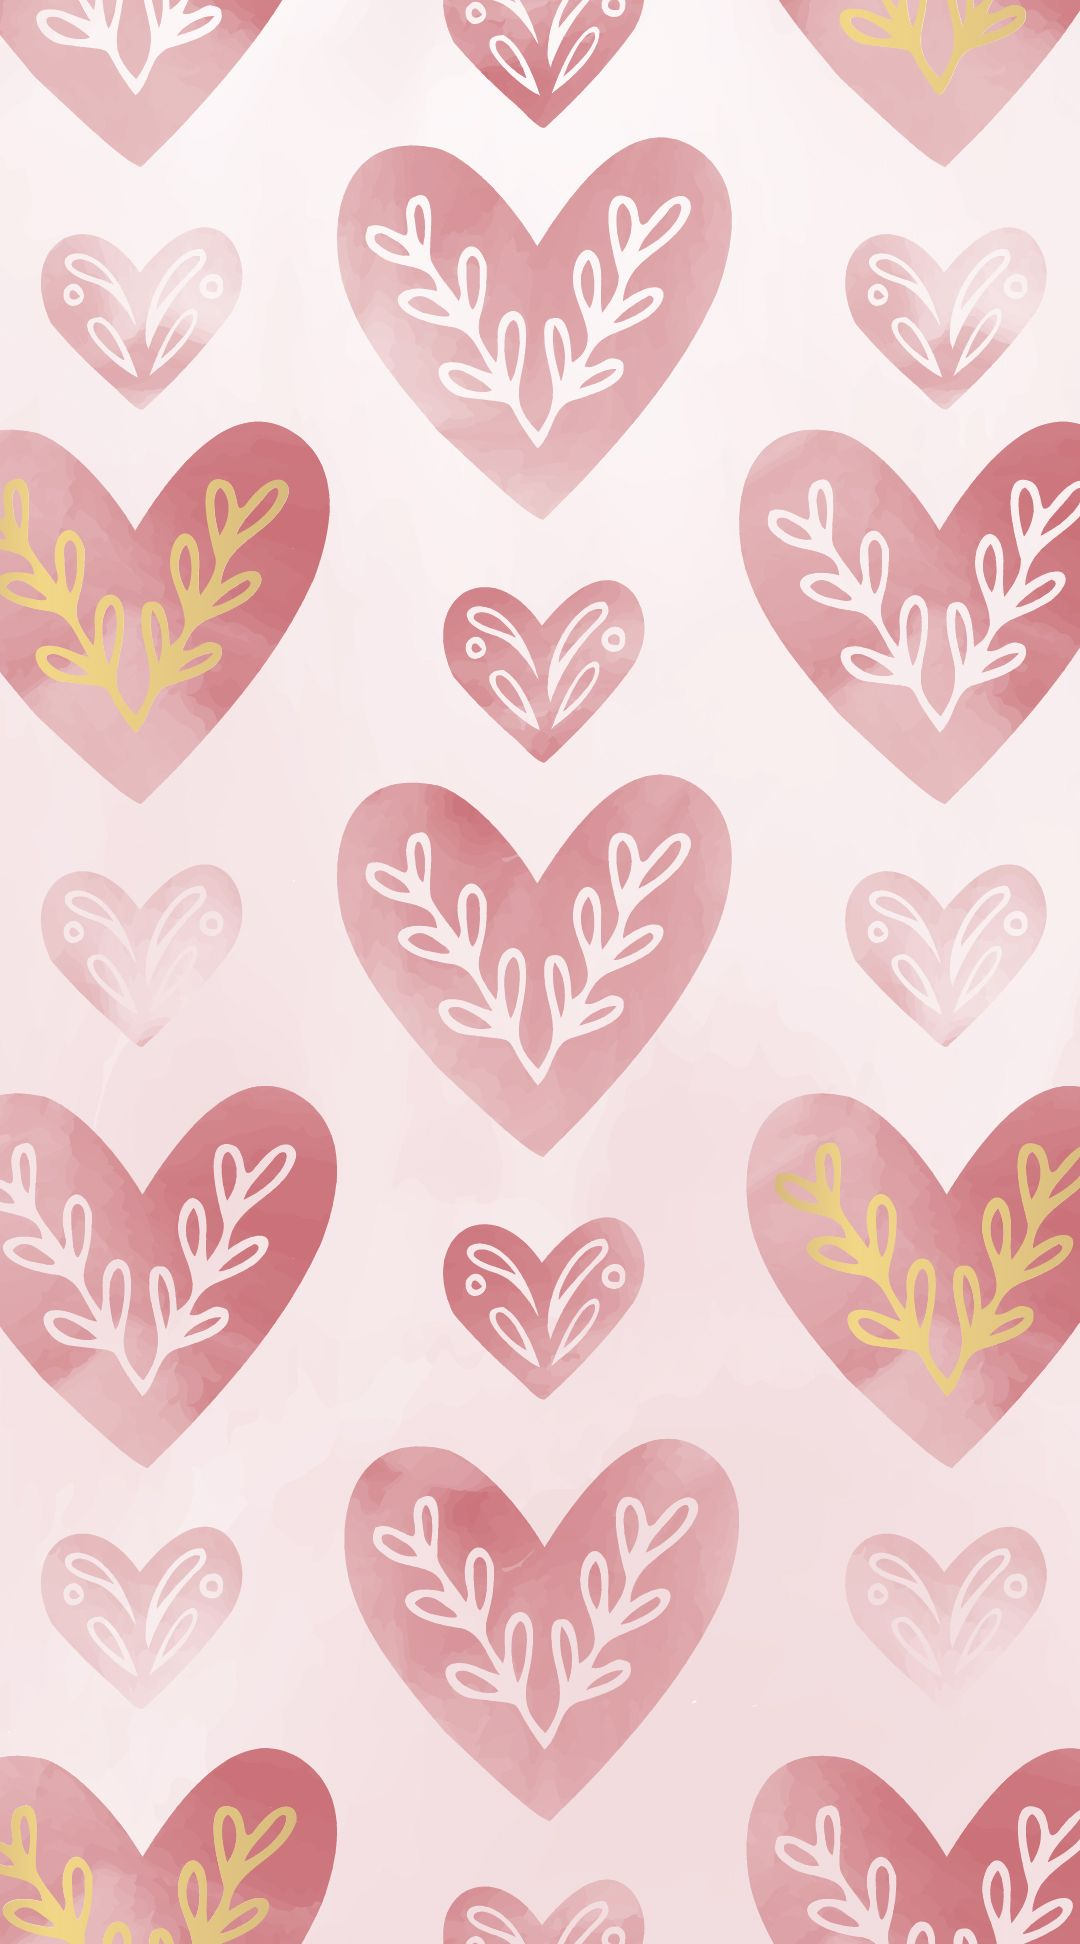 Valentines Day Wallpaper Wallpaper Cute Home Screens Pattern Wallpaper Lock screen iphone cute valentines day